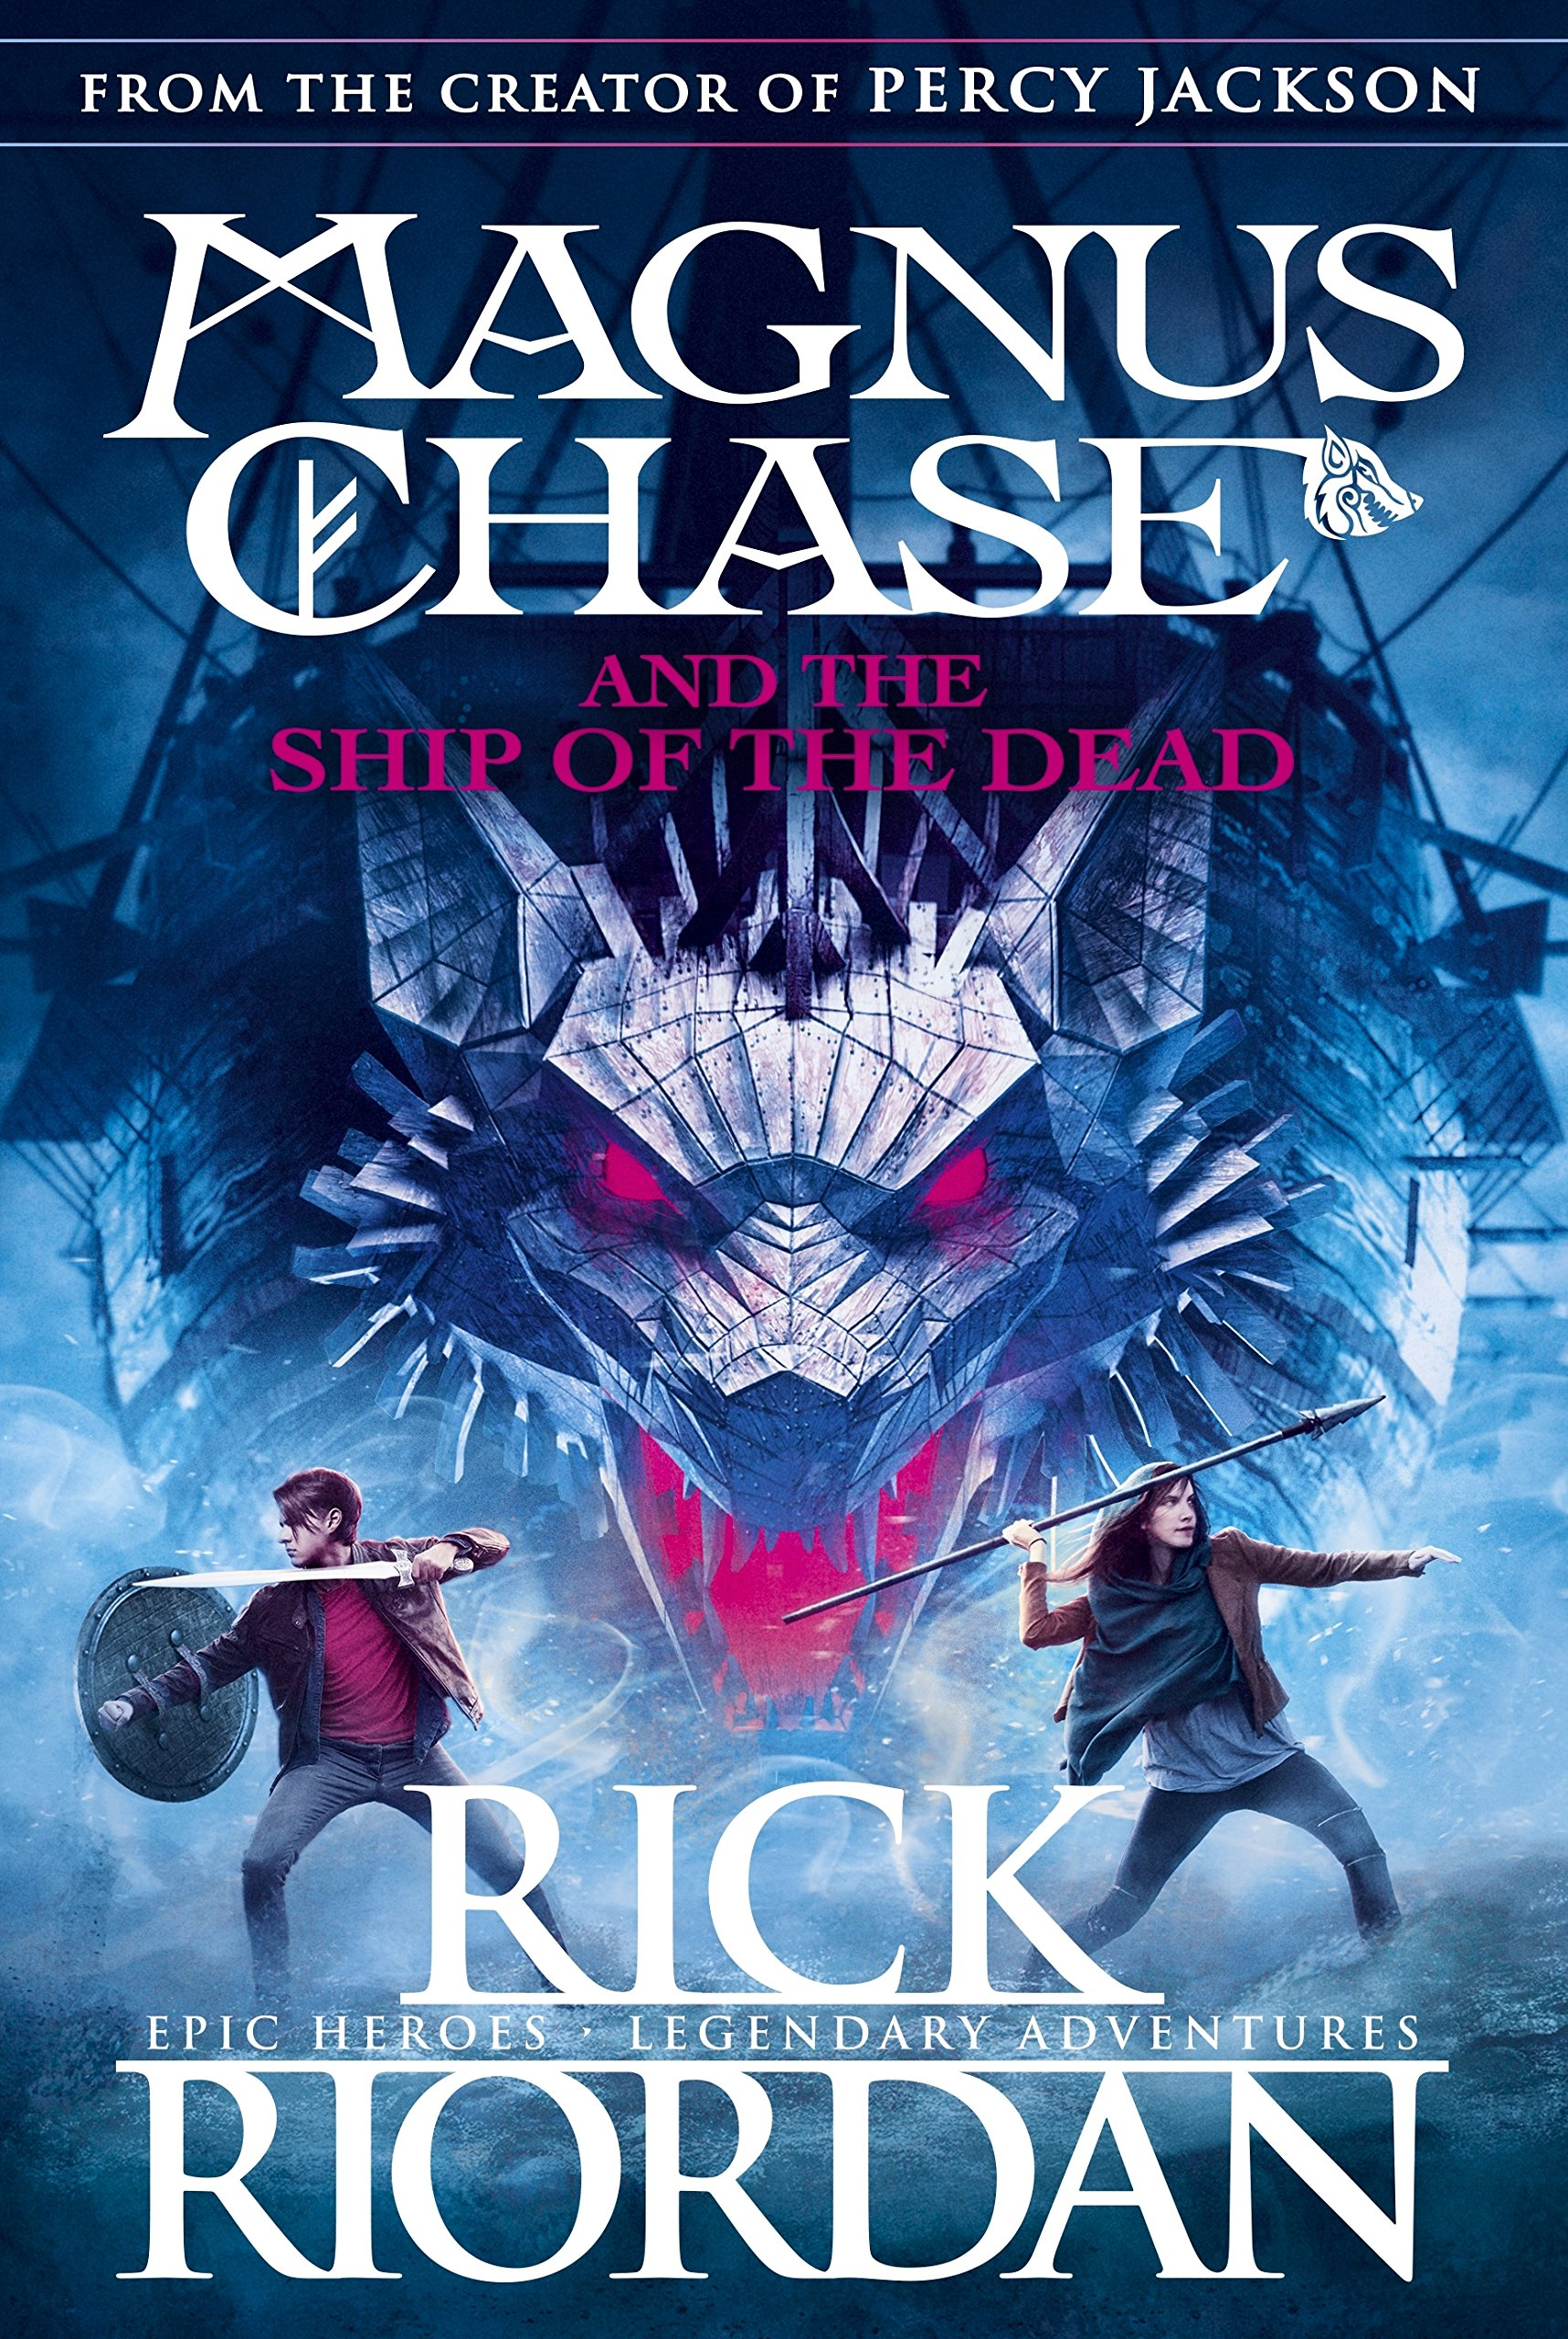 Magnus Chase and the Ship of the Dead...